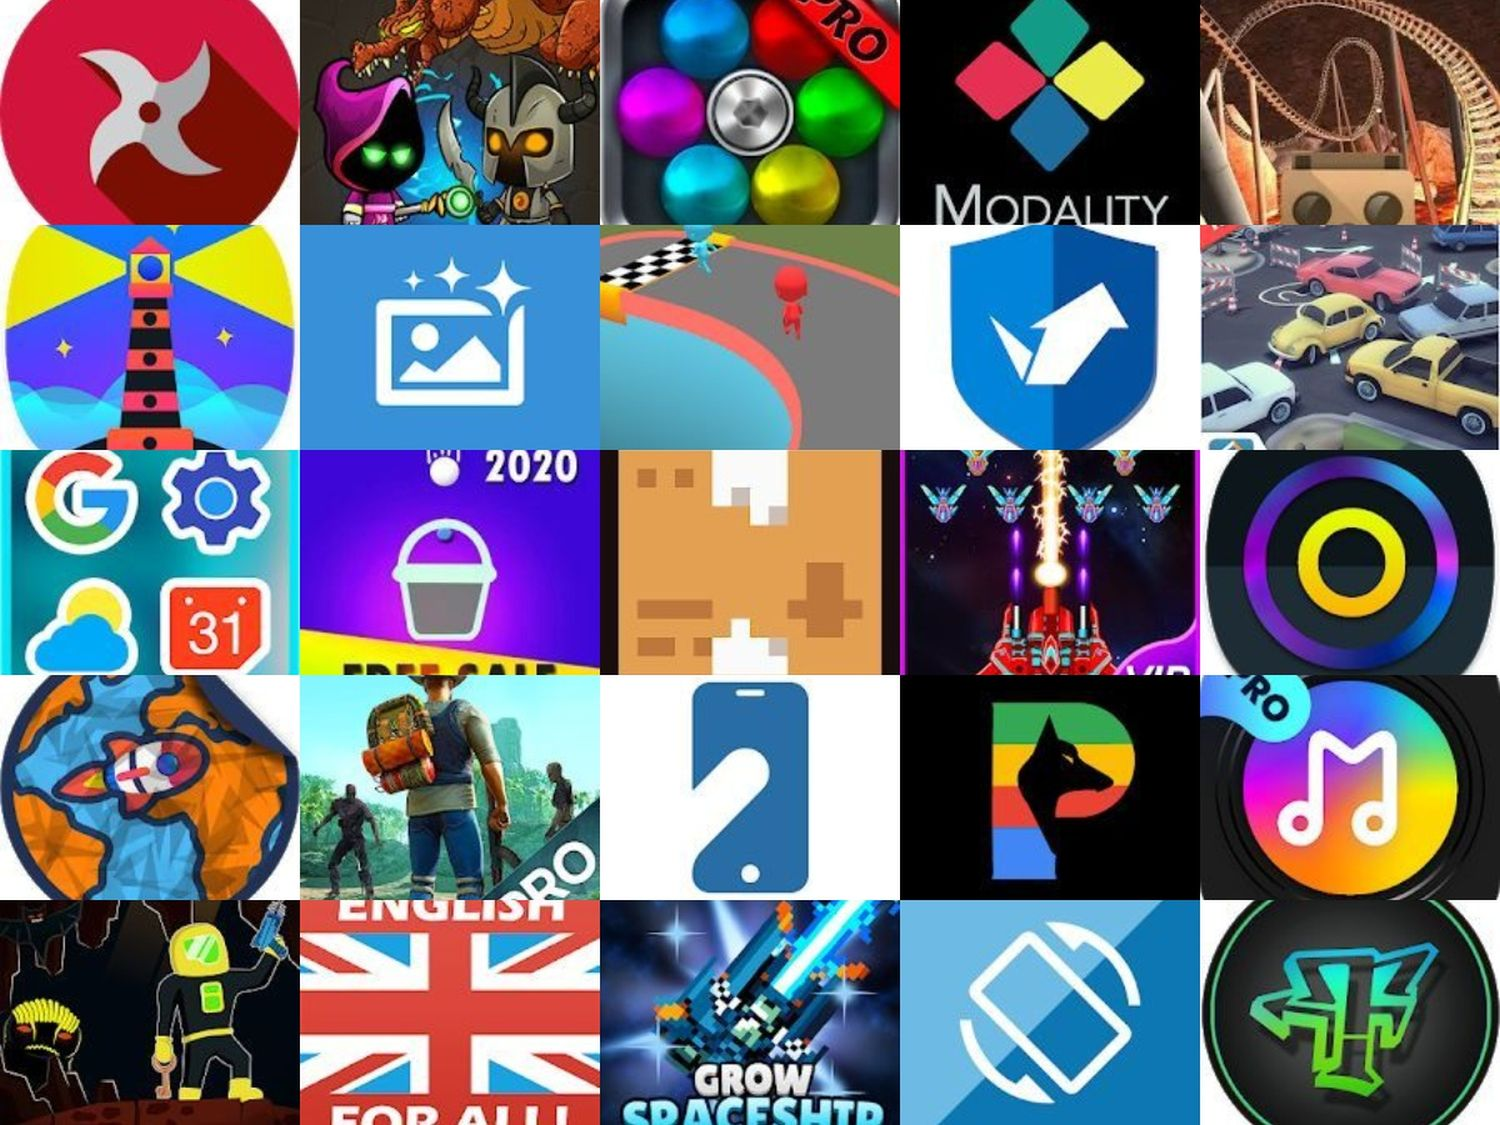 apps 30.07.2020